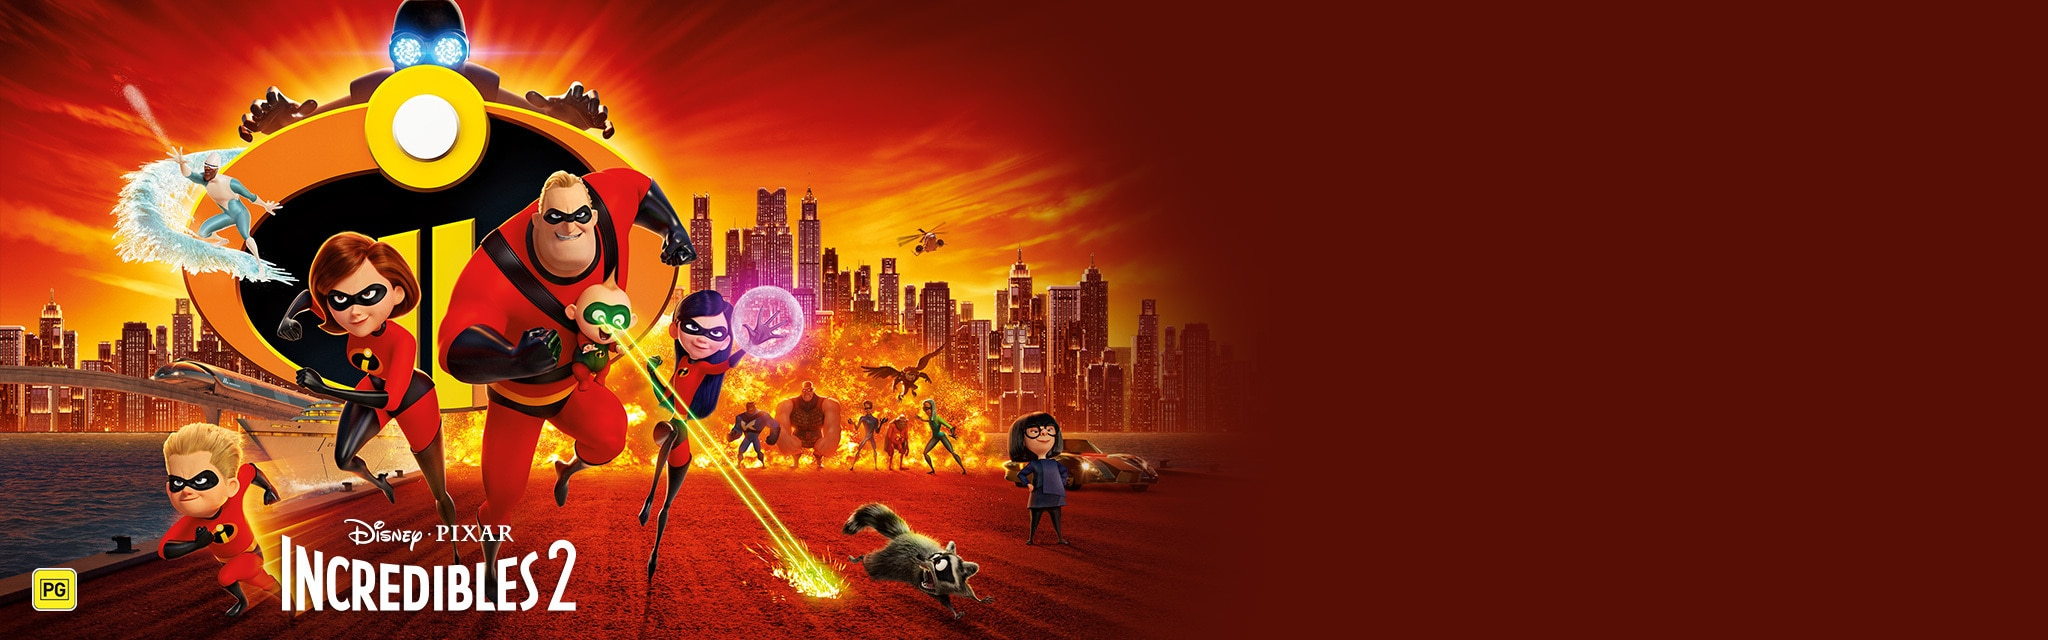 Movies AU - Incredibles 2 - movies homepage hero